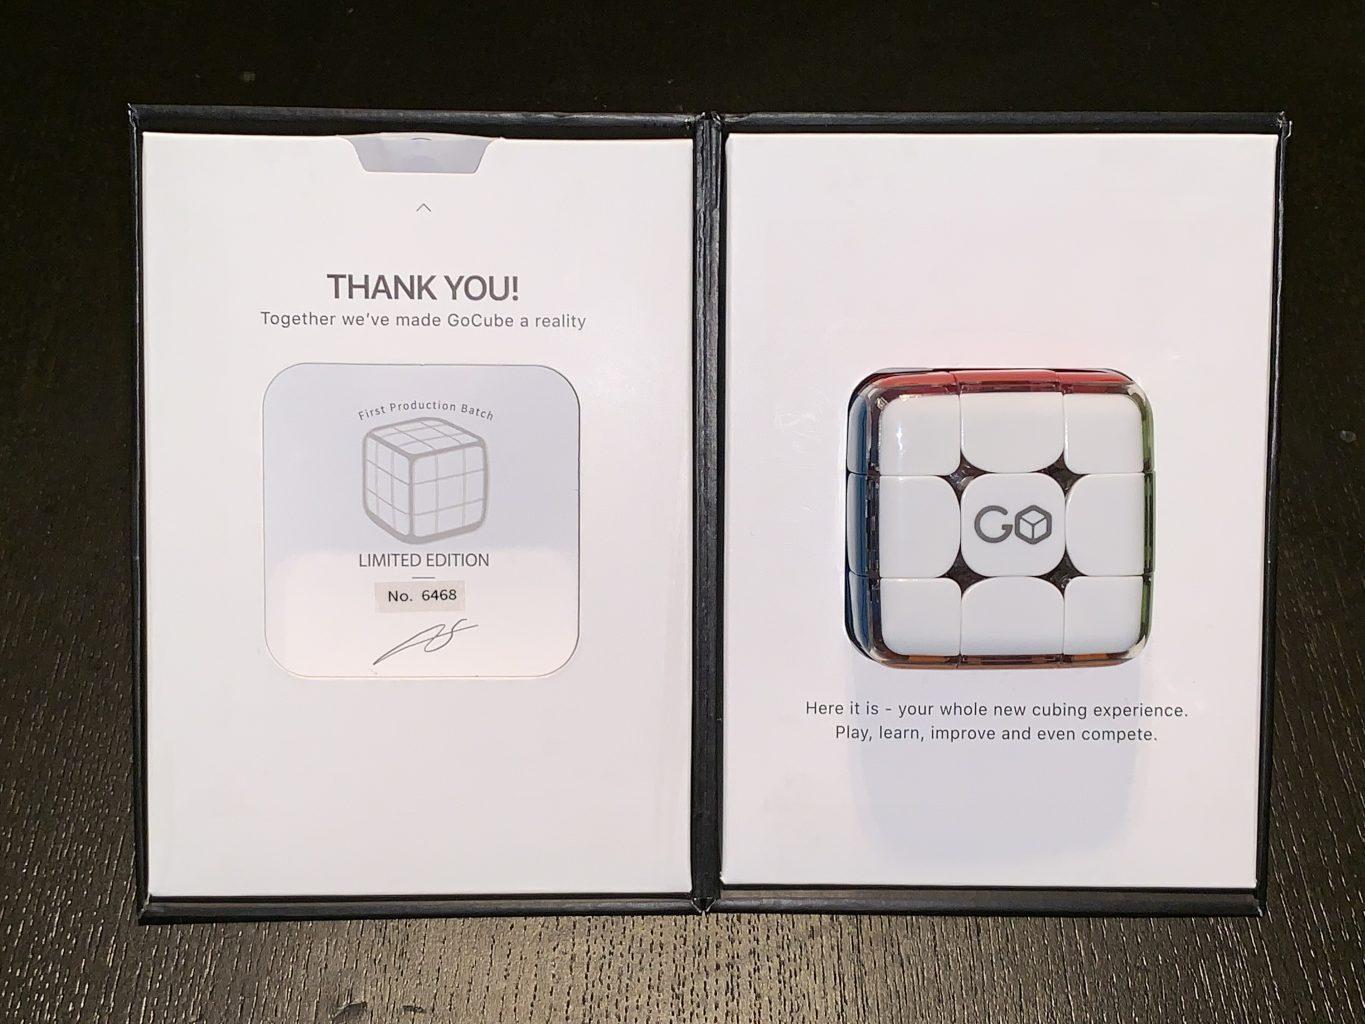 GoCube inside the original box